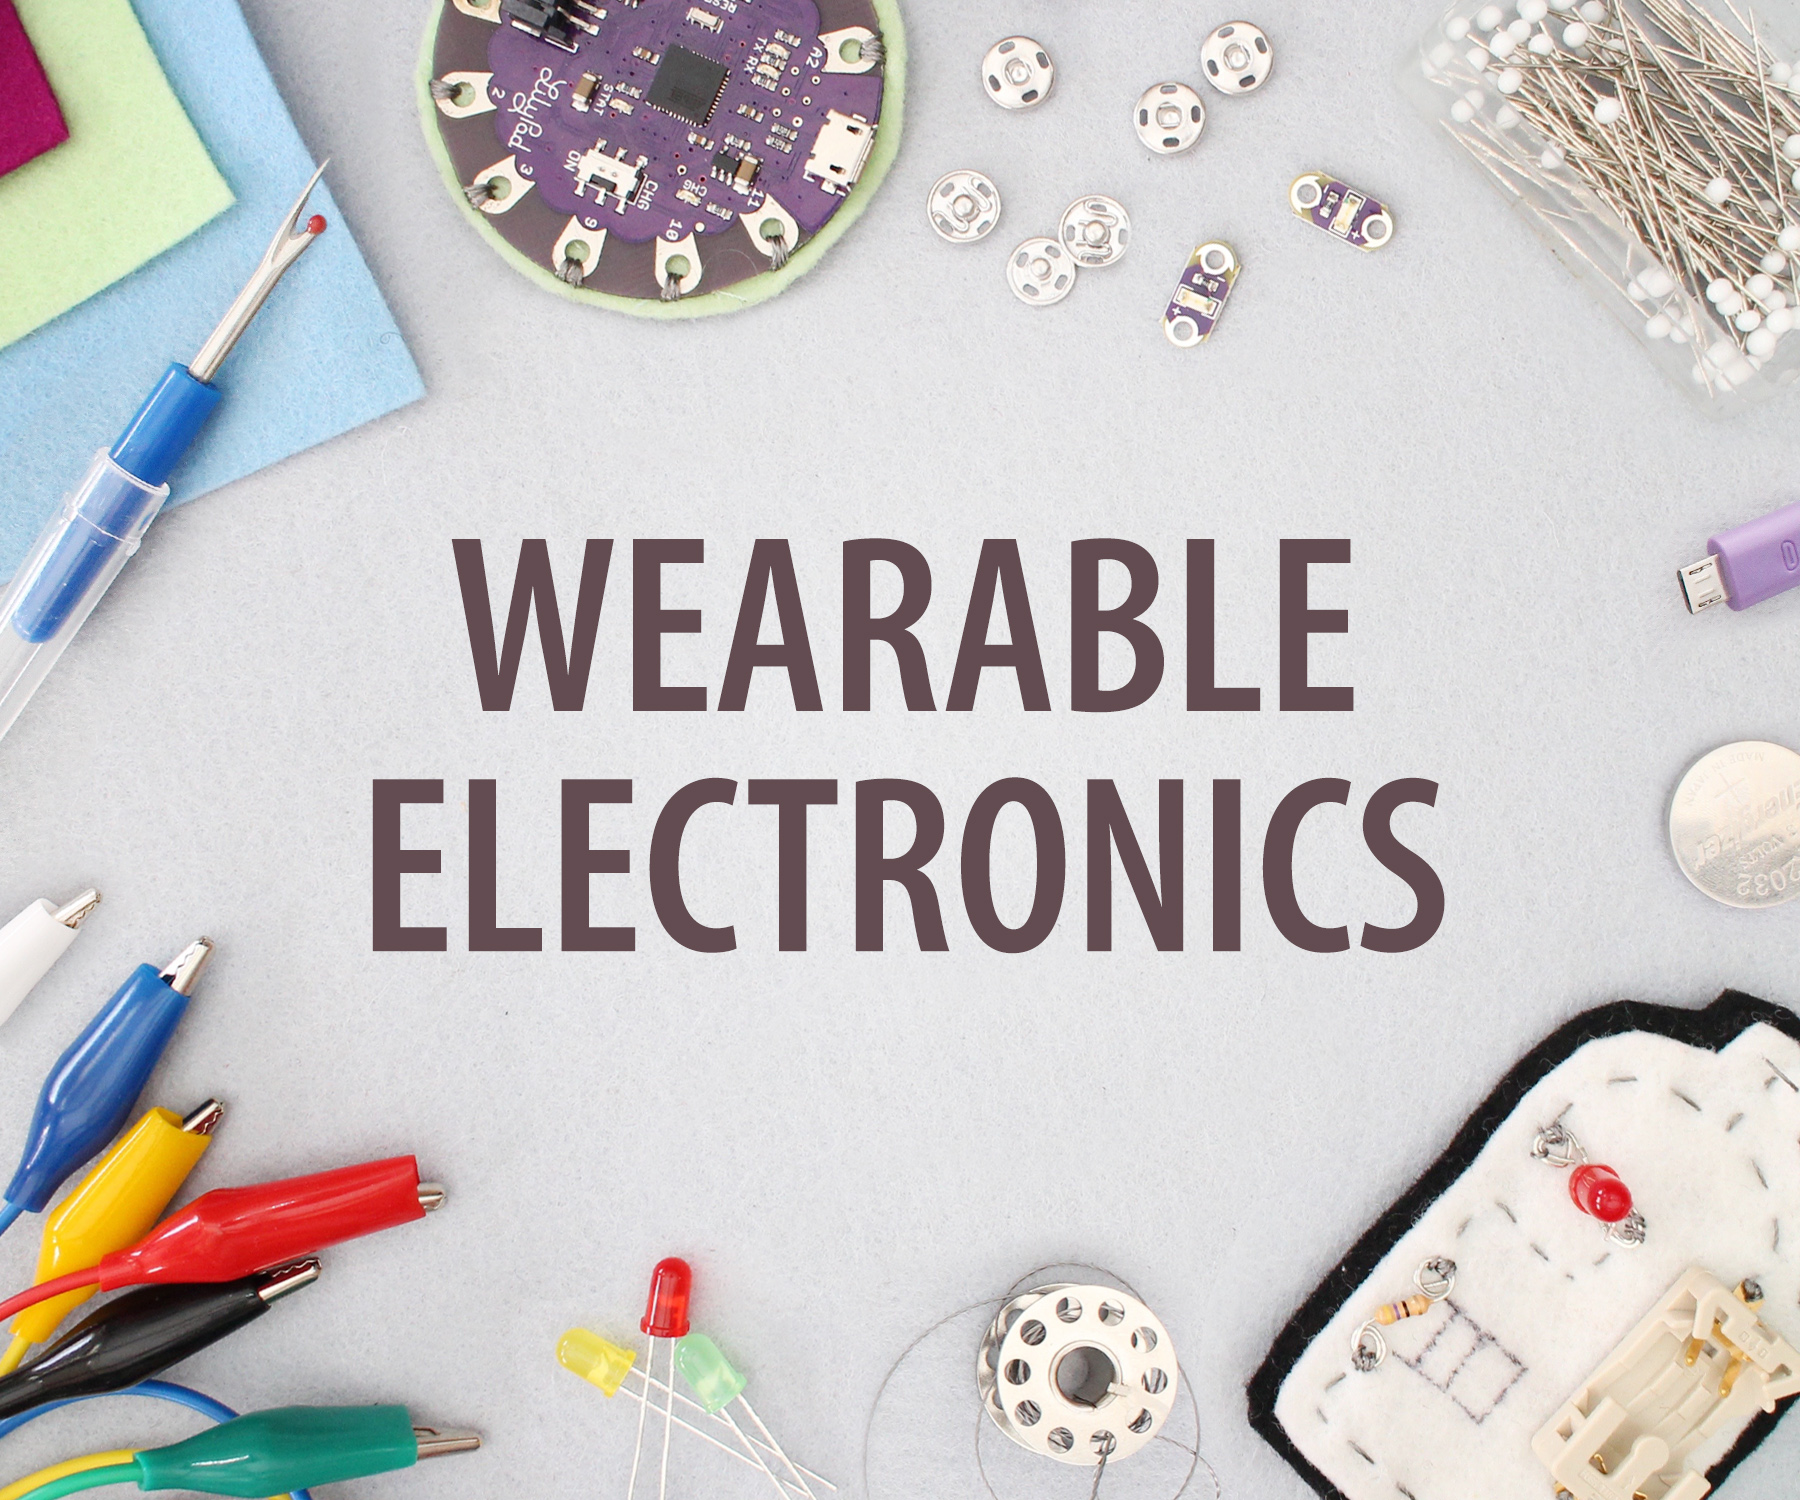 Wearable Electronics Class